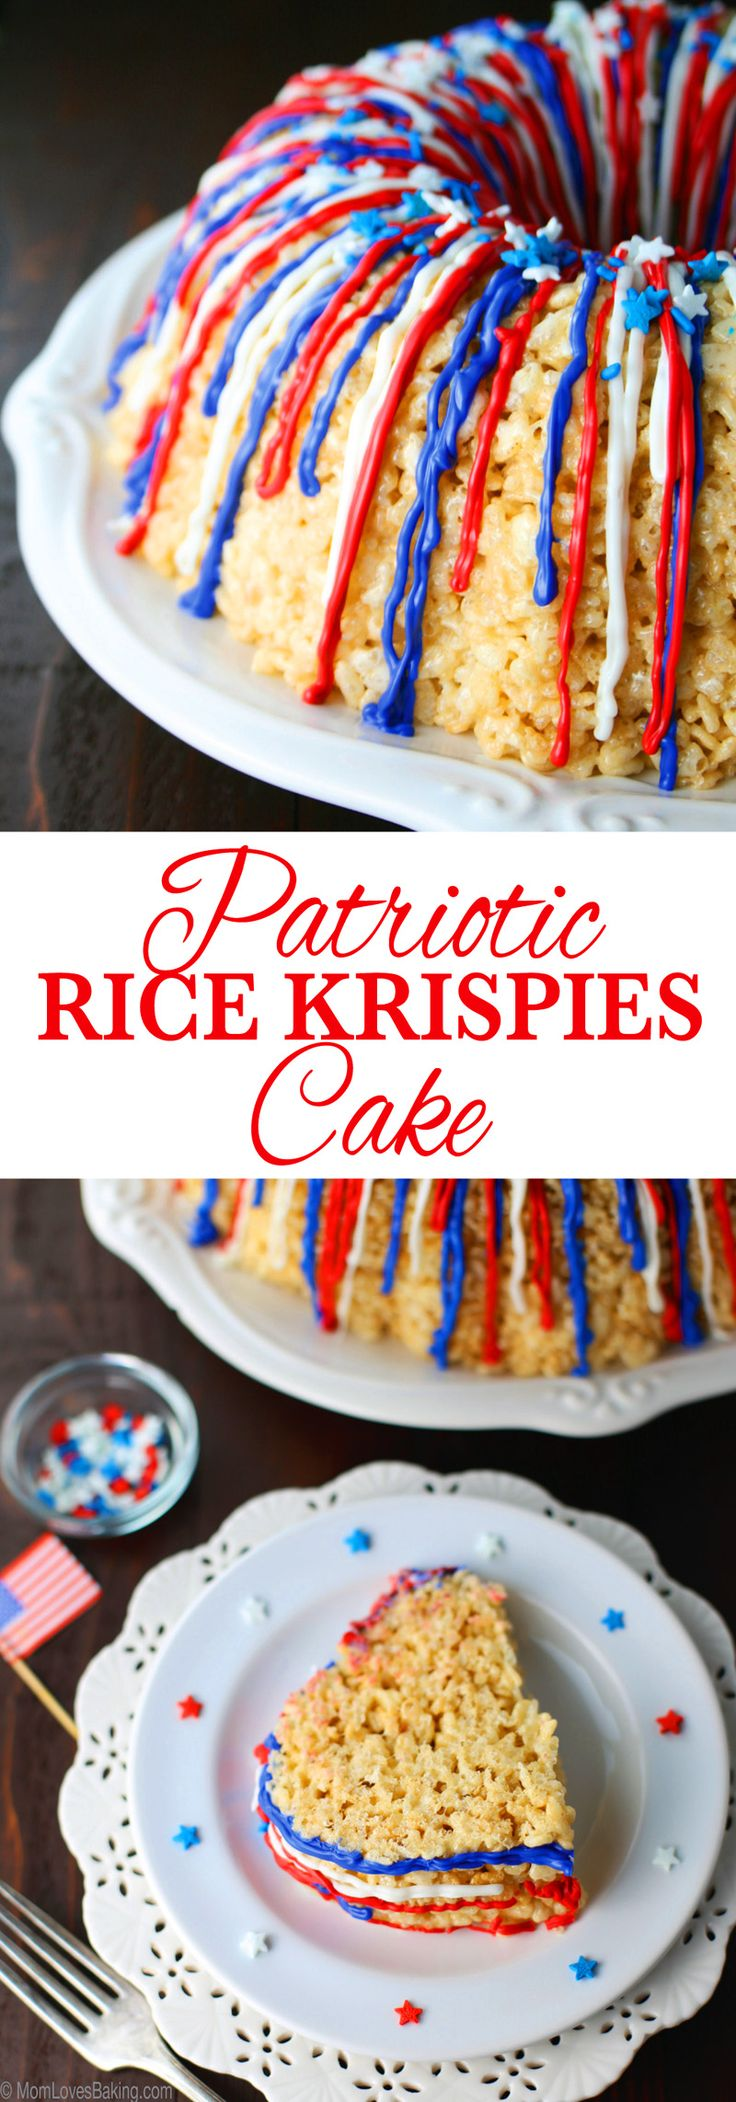 Patritotic Rice Krispies Cake! It's a great dessert for all ages, but especially the kiddos. Get the recipe on MomLovesBaking.com